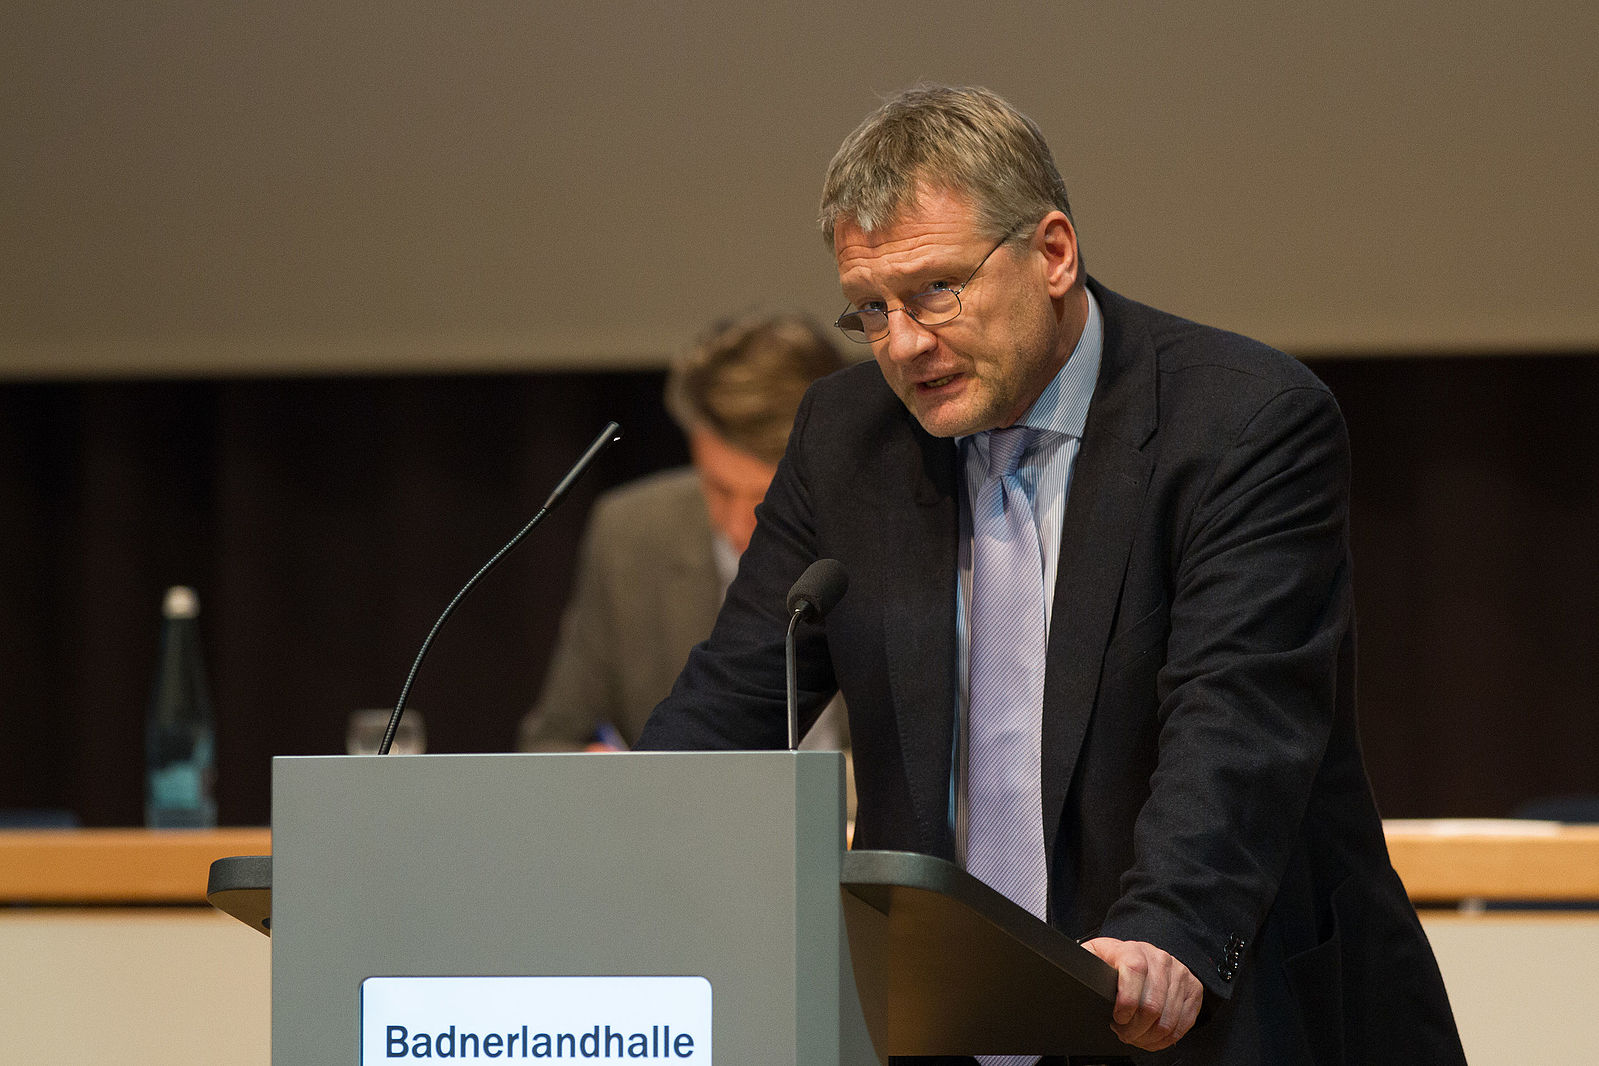 AfD leader Jörg Meuthen at AfD Baden-Württemberg party convention in 2015 [Wikimedia Commons].